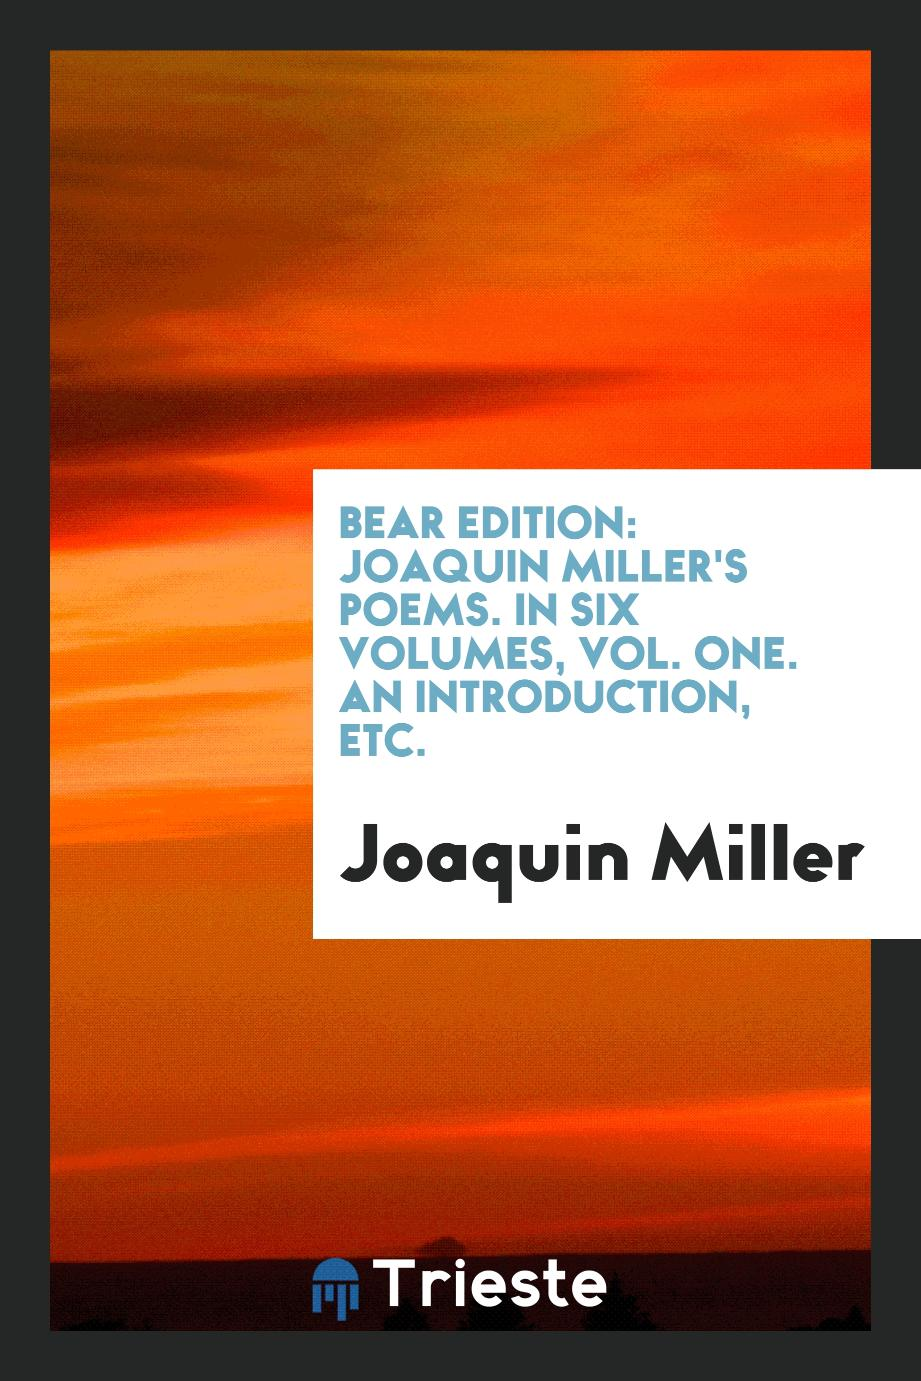 Bear Edition: Joaquin Miller's Poems. In Six Volumes, Vol. One. An Introduction, Etc.